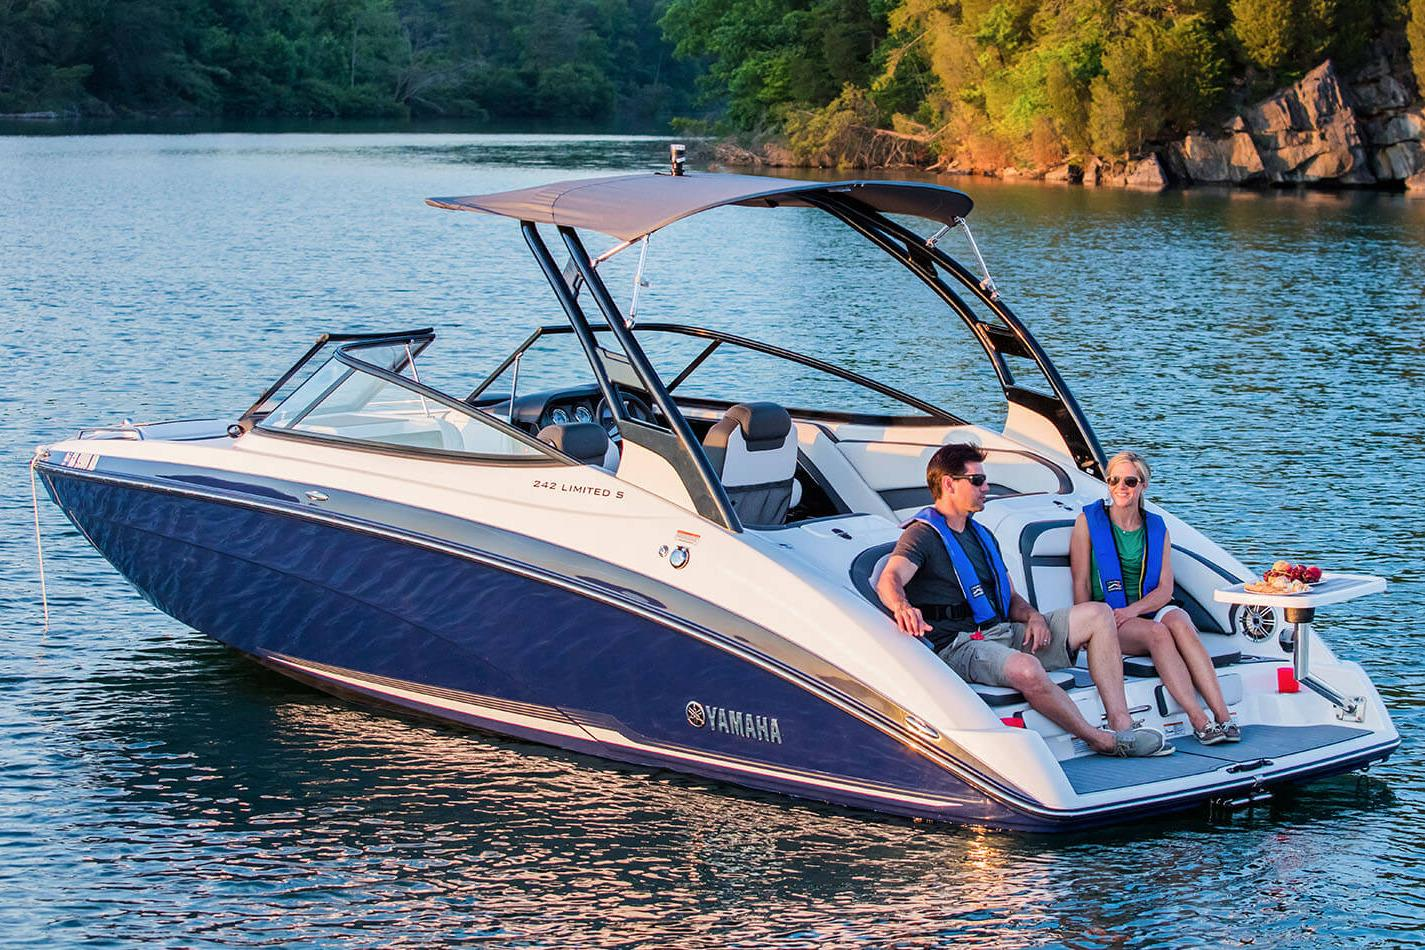 2017 Yamaha 242 Limited S in Bridgeport, New York